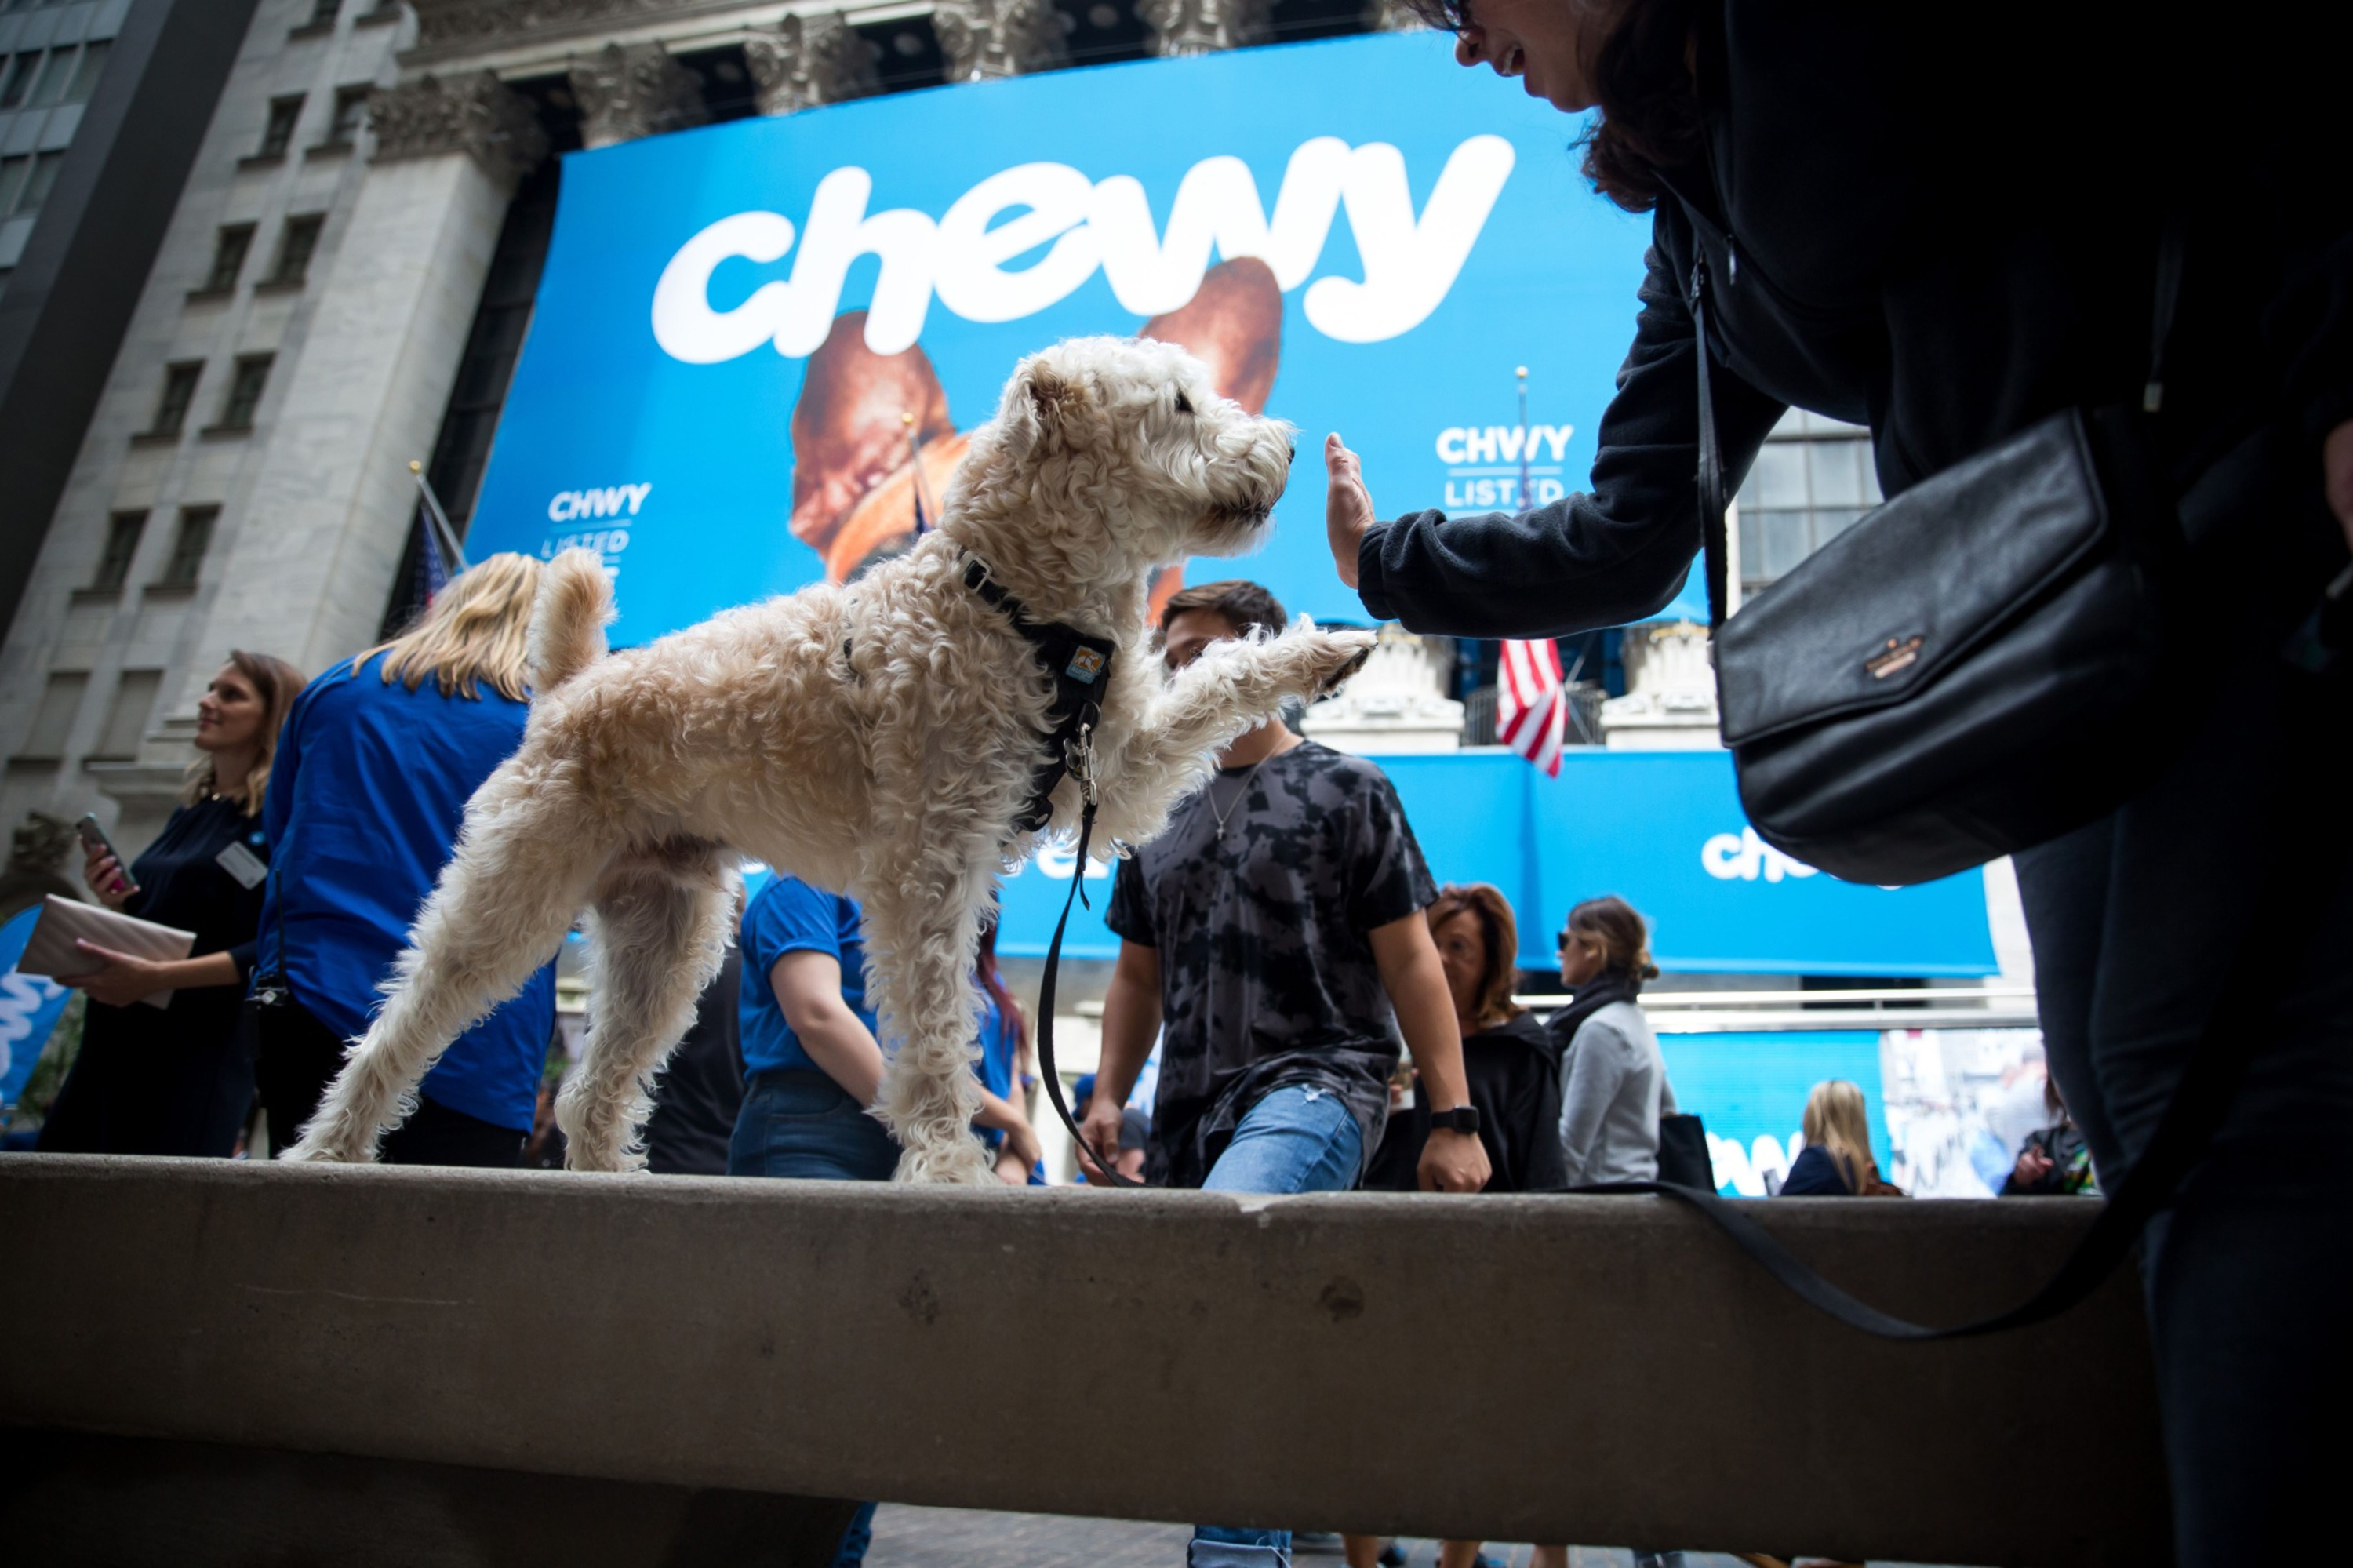 Chewy CEO sees online shopping rush 'here to stay' as sales boom